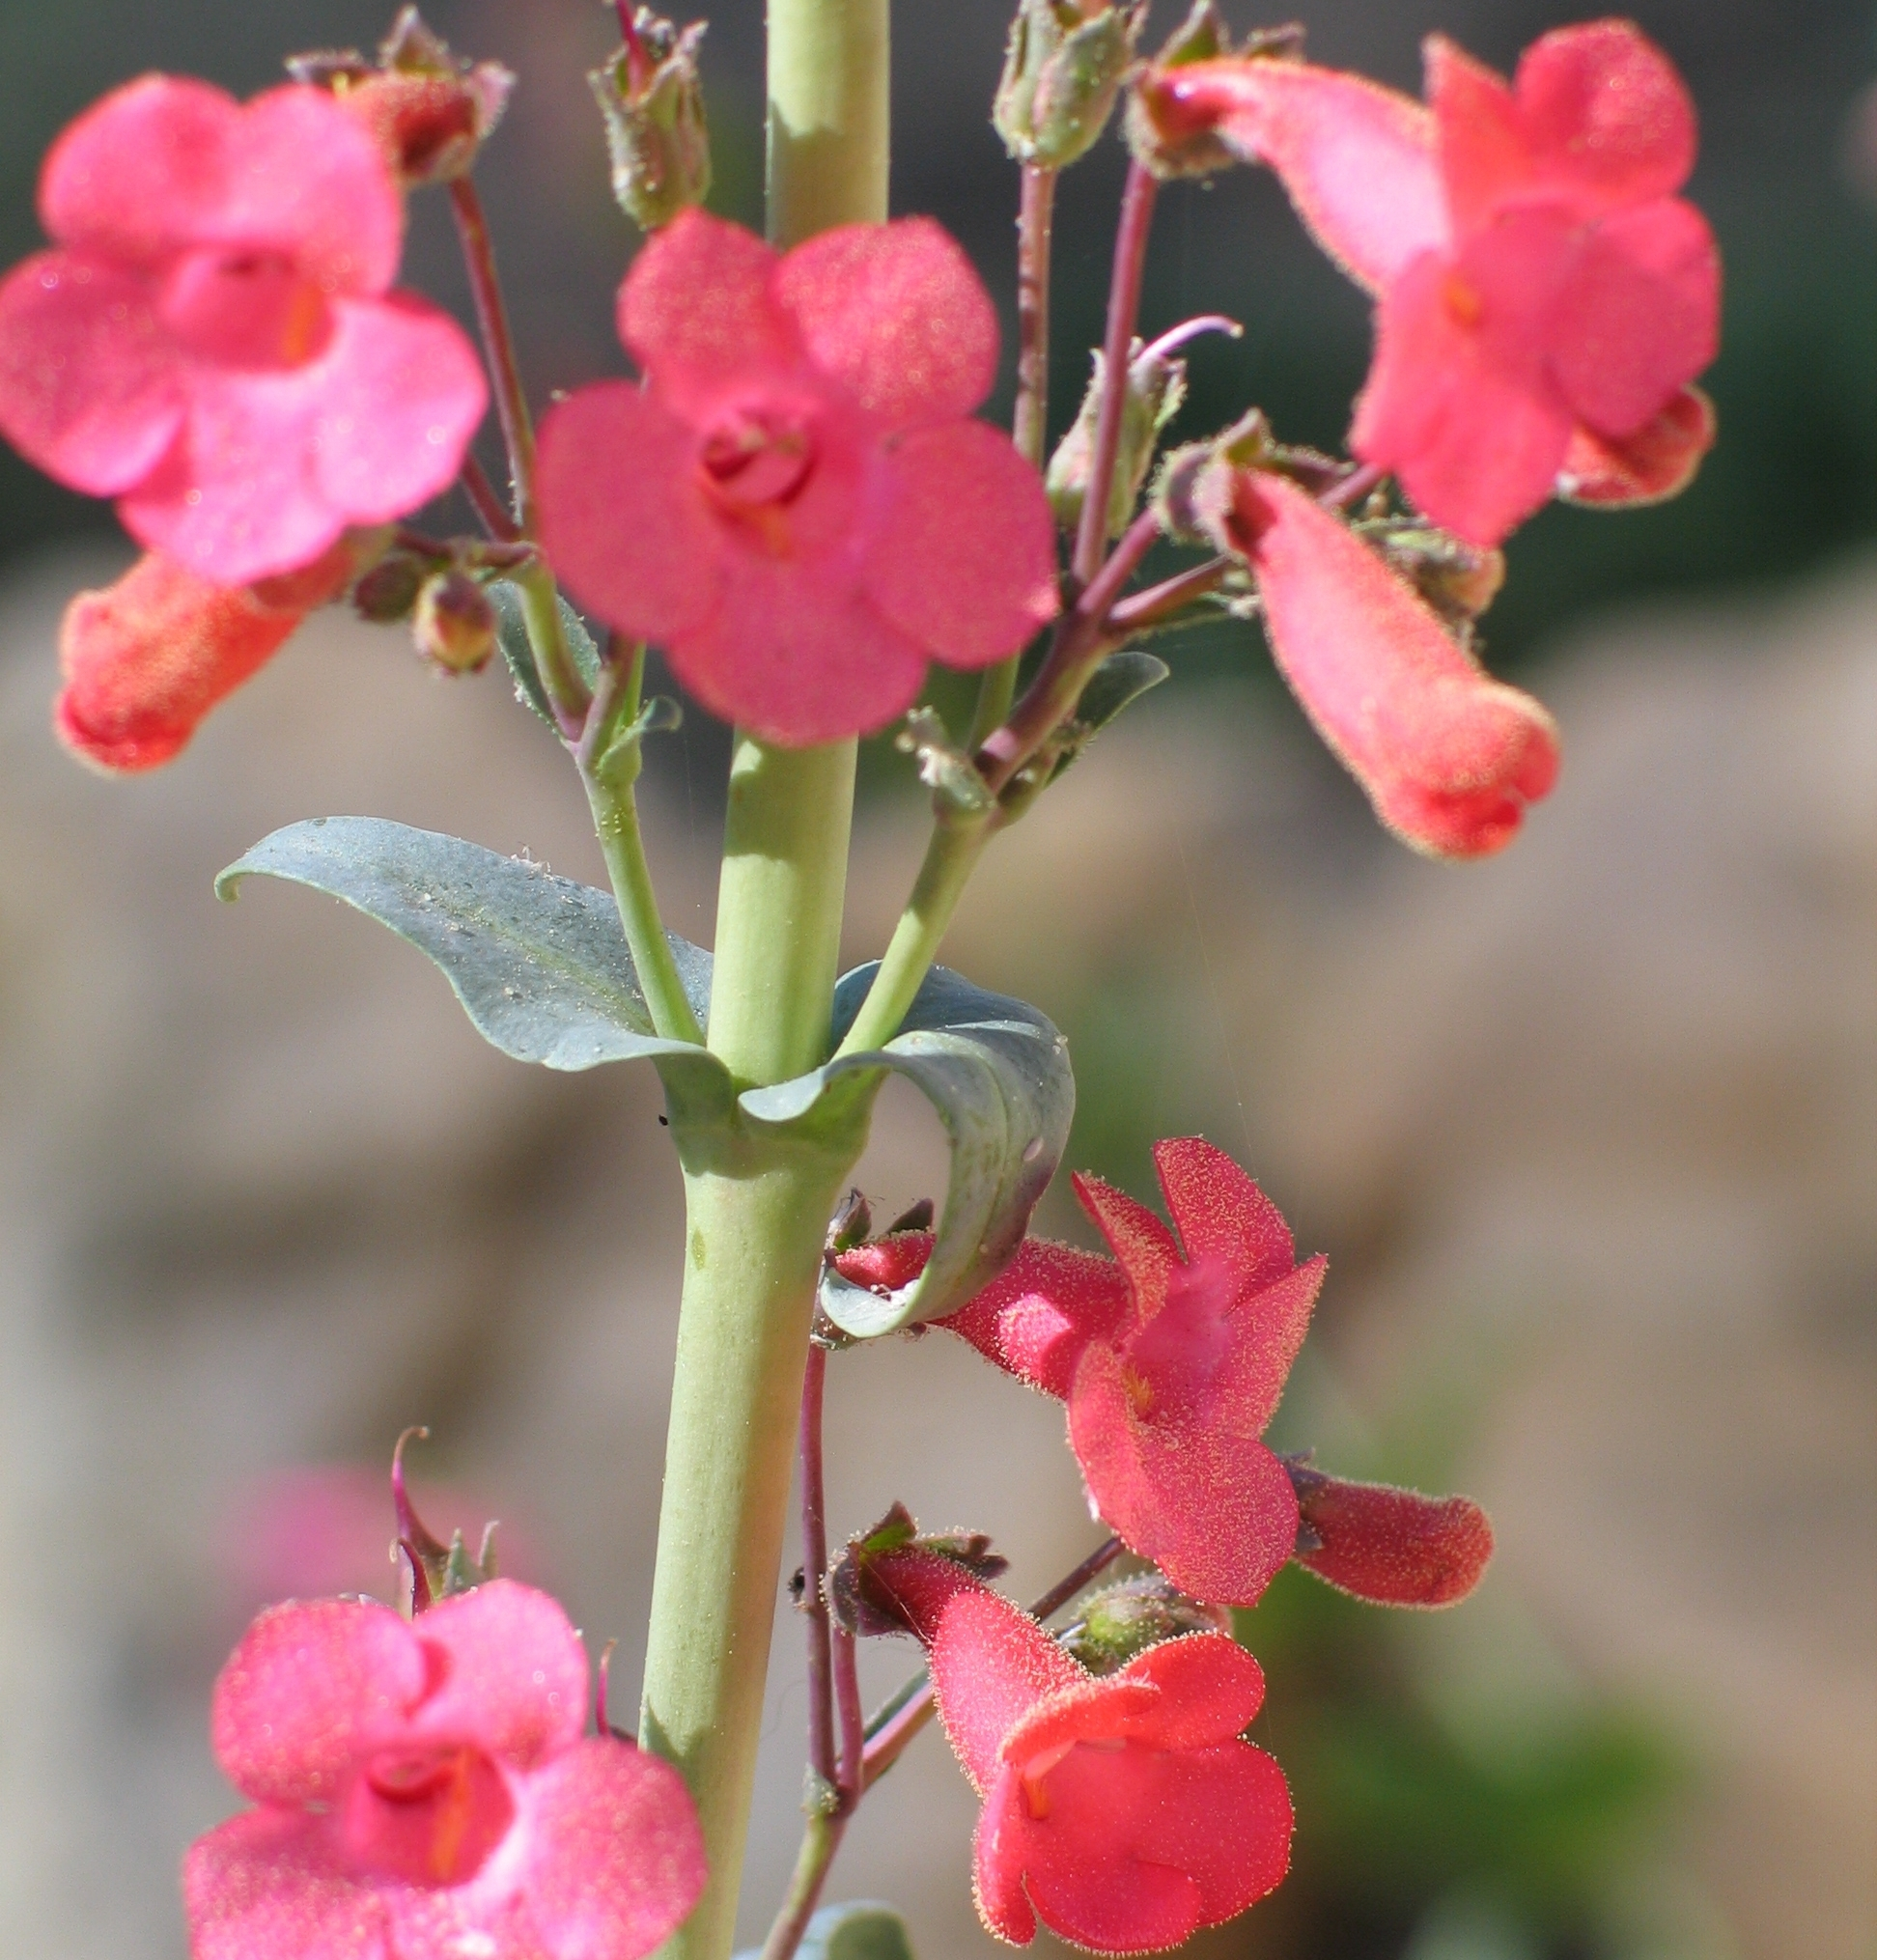 Superb Penstemon - Penstemon superbus